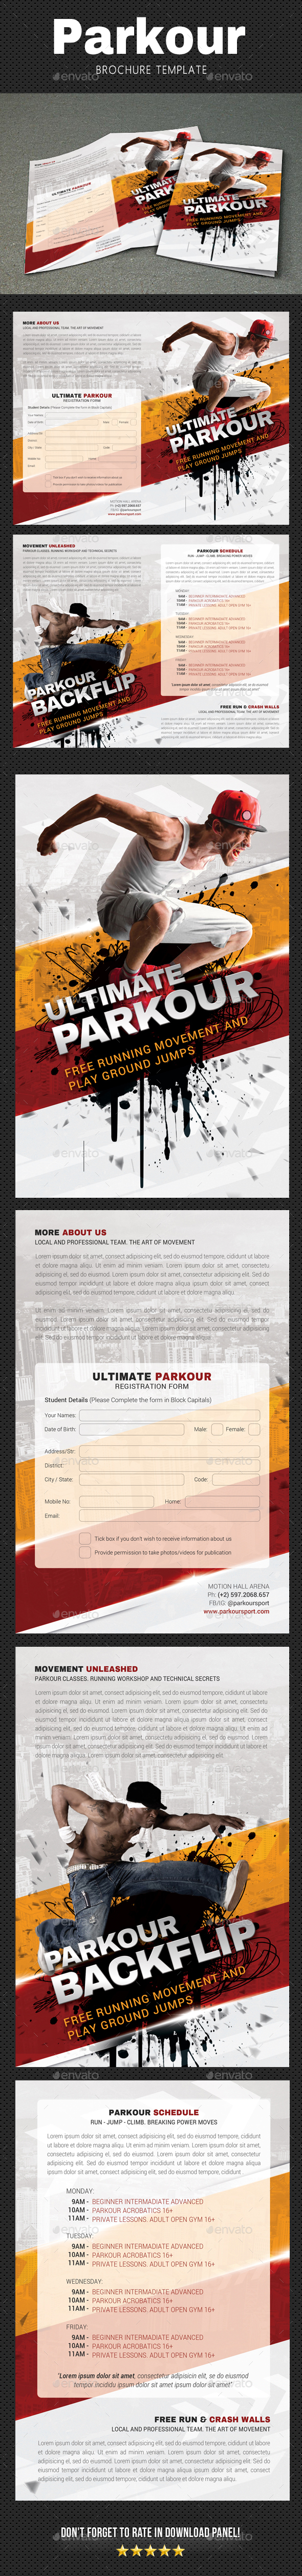 GraphicRiver Parkour Brochure 20705398